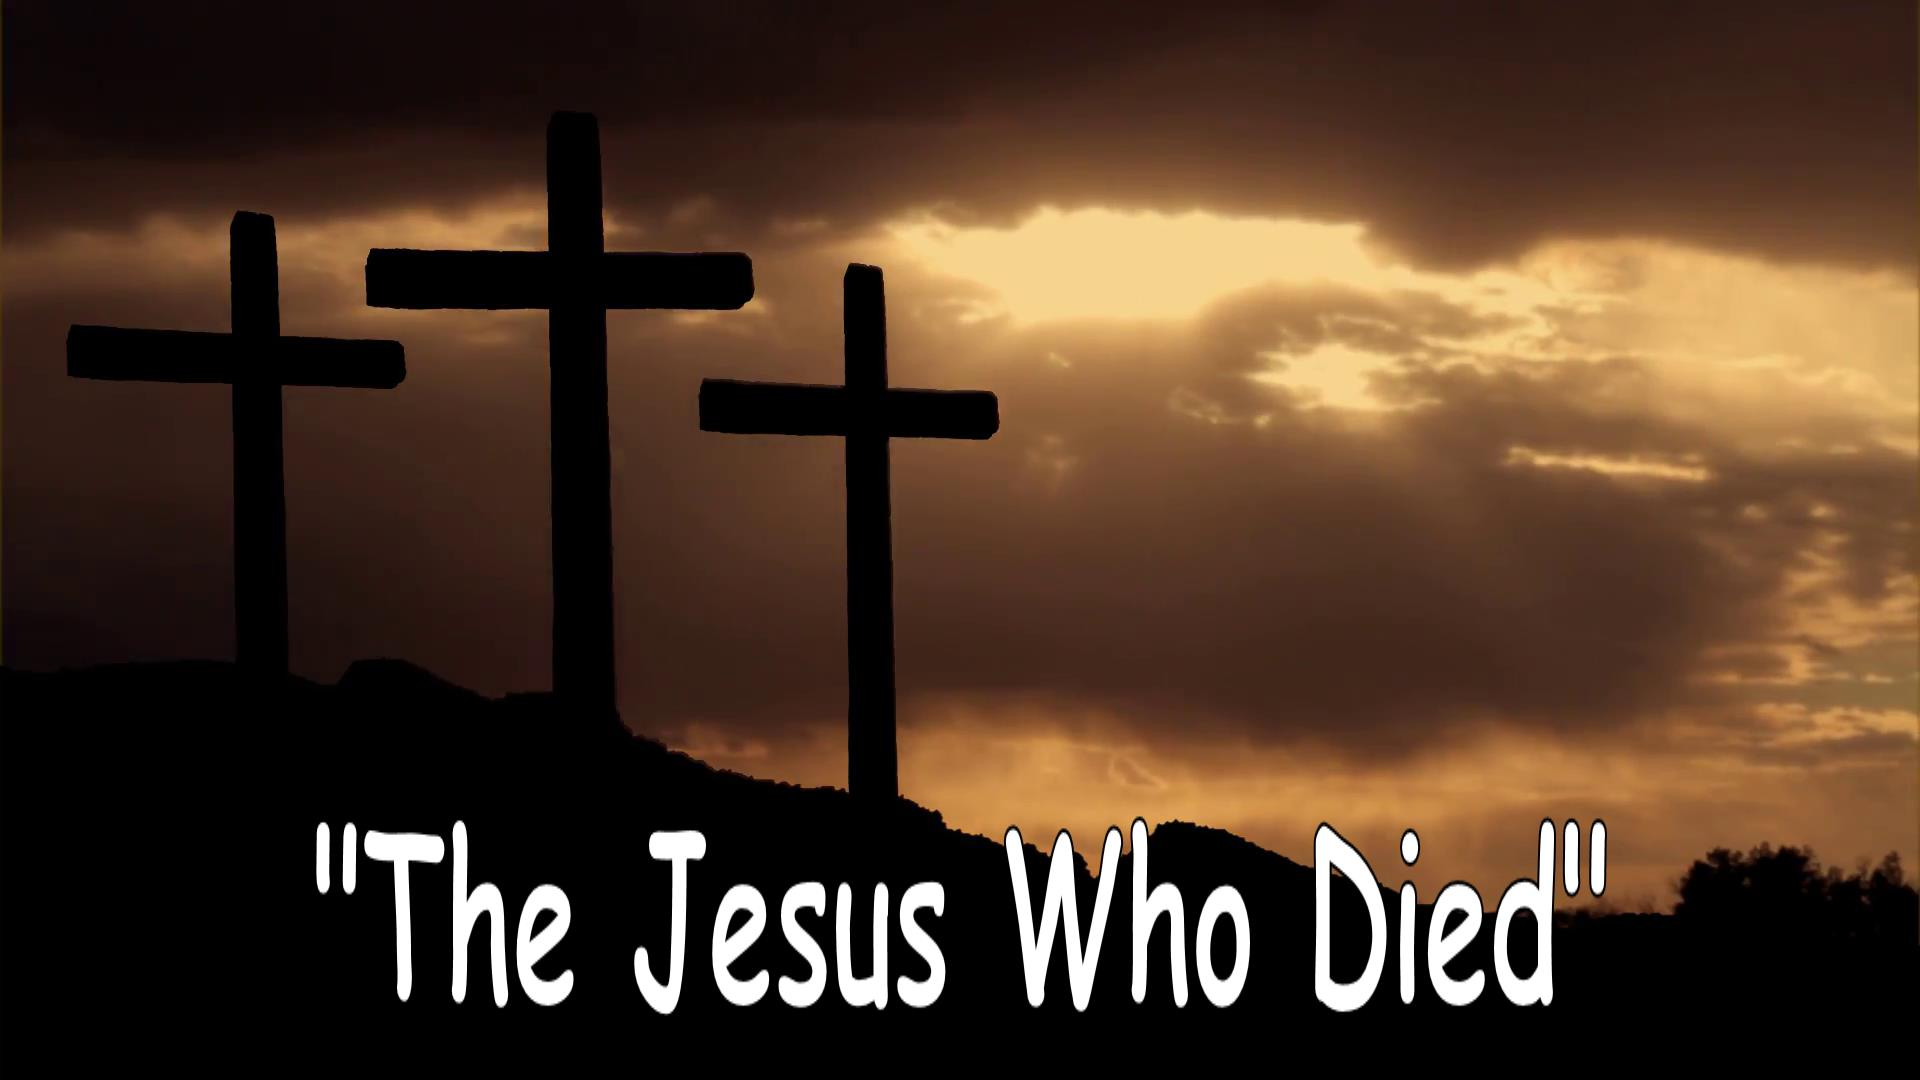 The Jesus Who Died